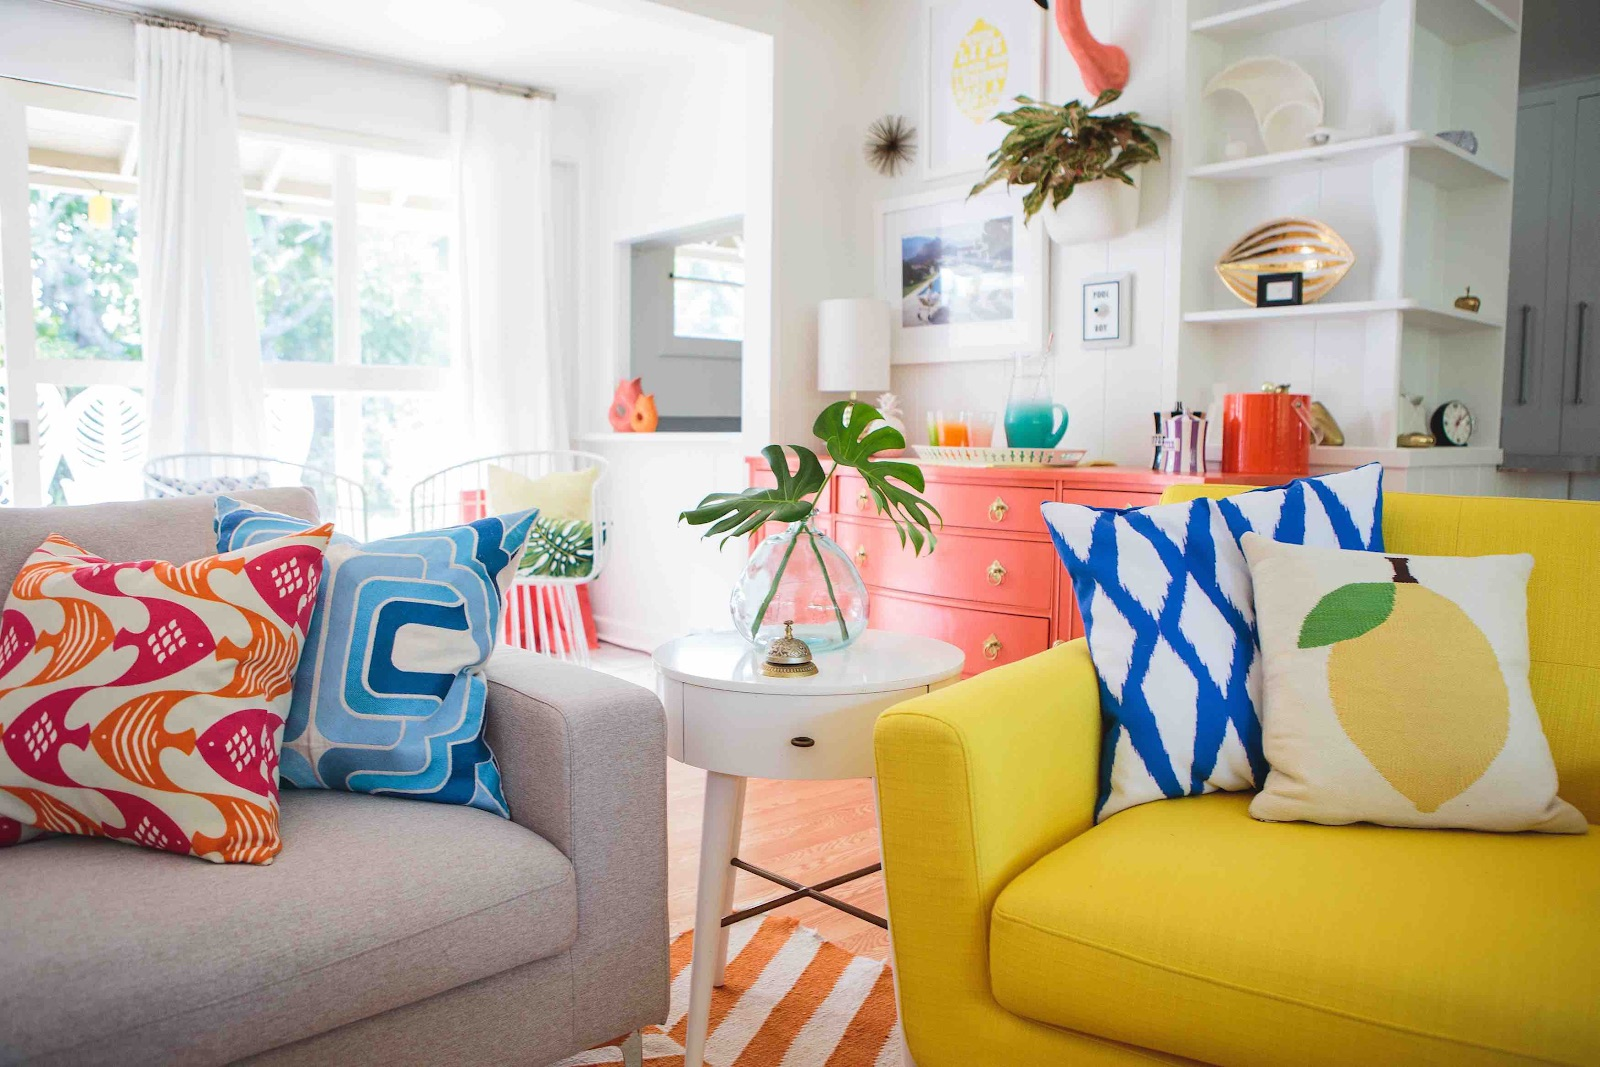 Colorful cushion covers and soft throws on sofa promotes the Retro vibe in the space